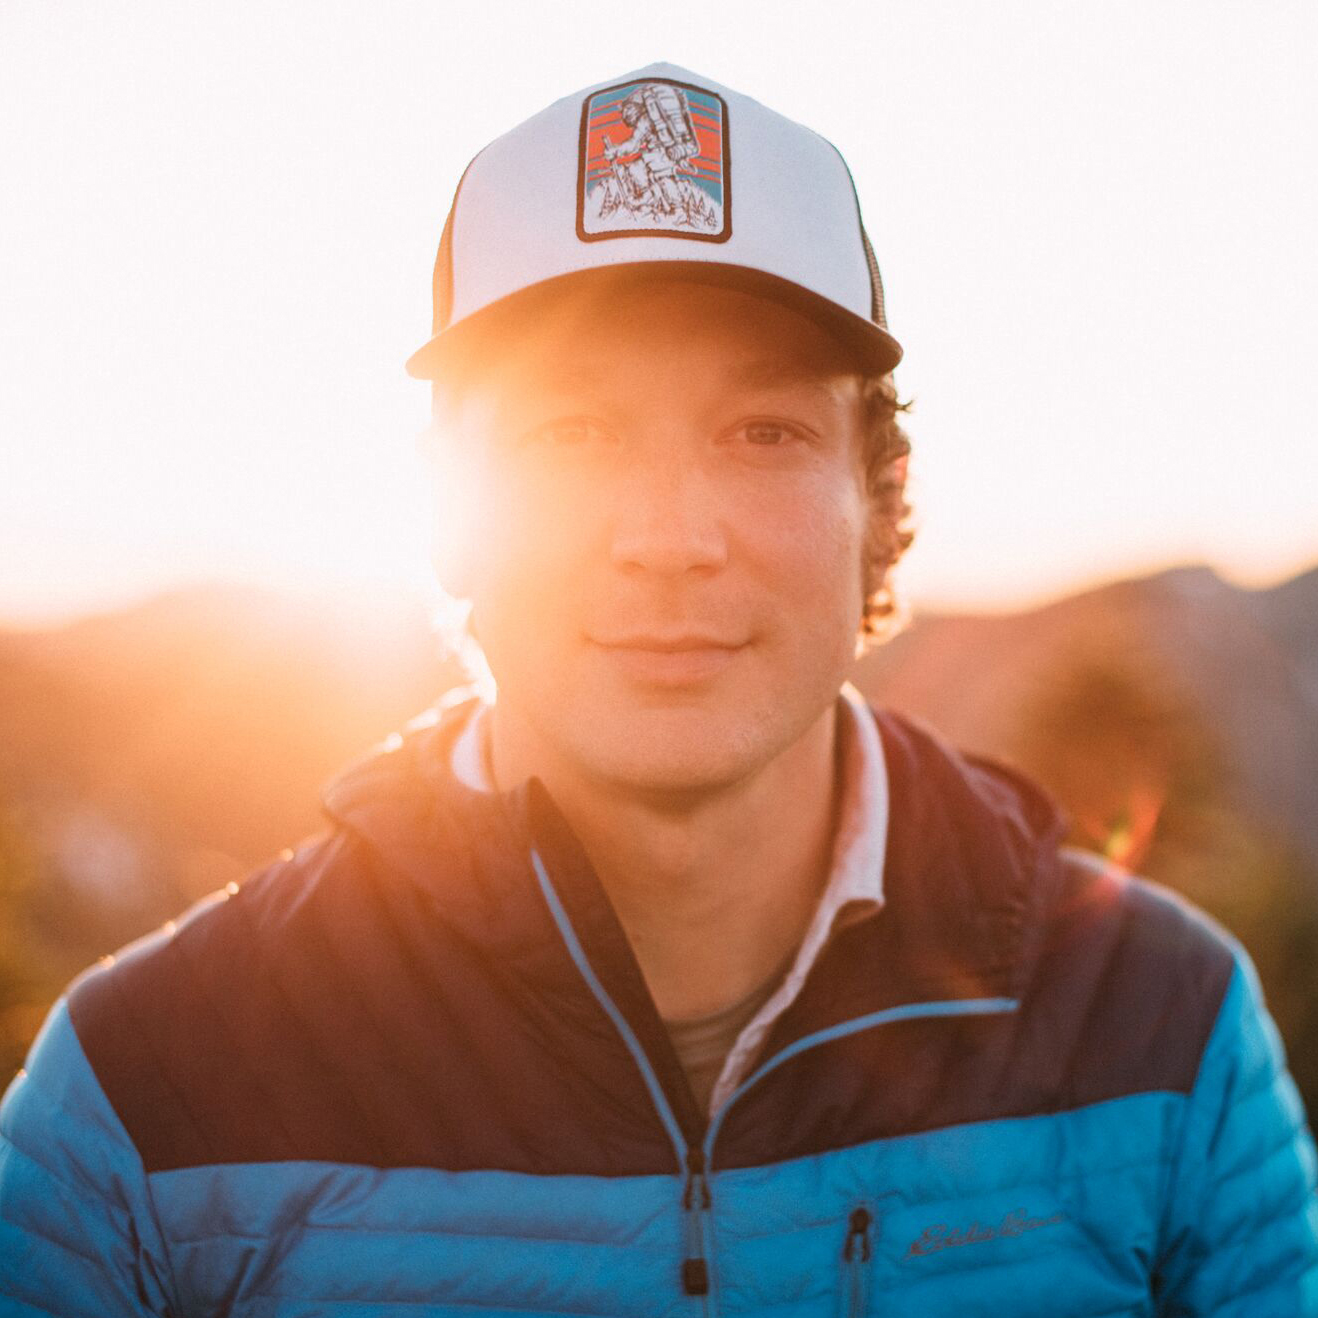 Scott_Kranz_Head_Shot-1-square.jpeg